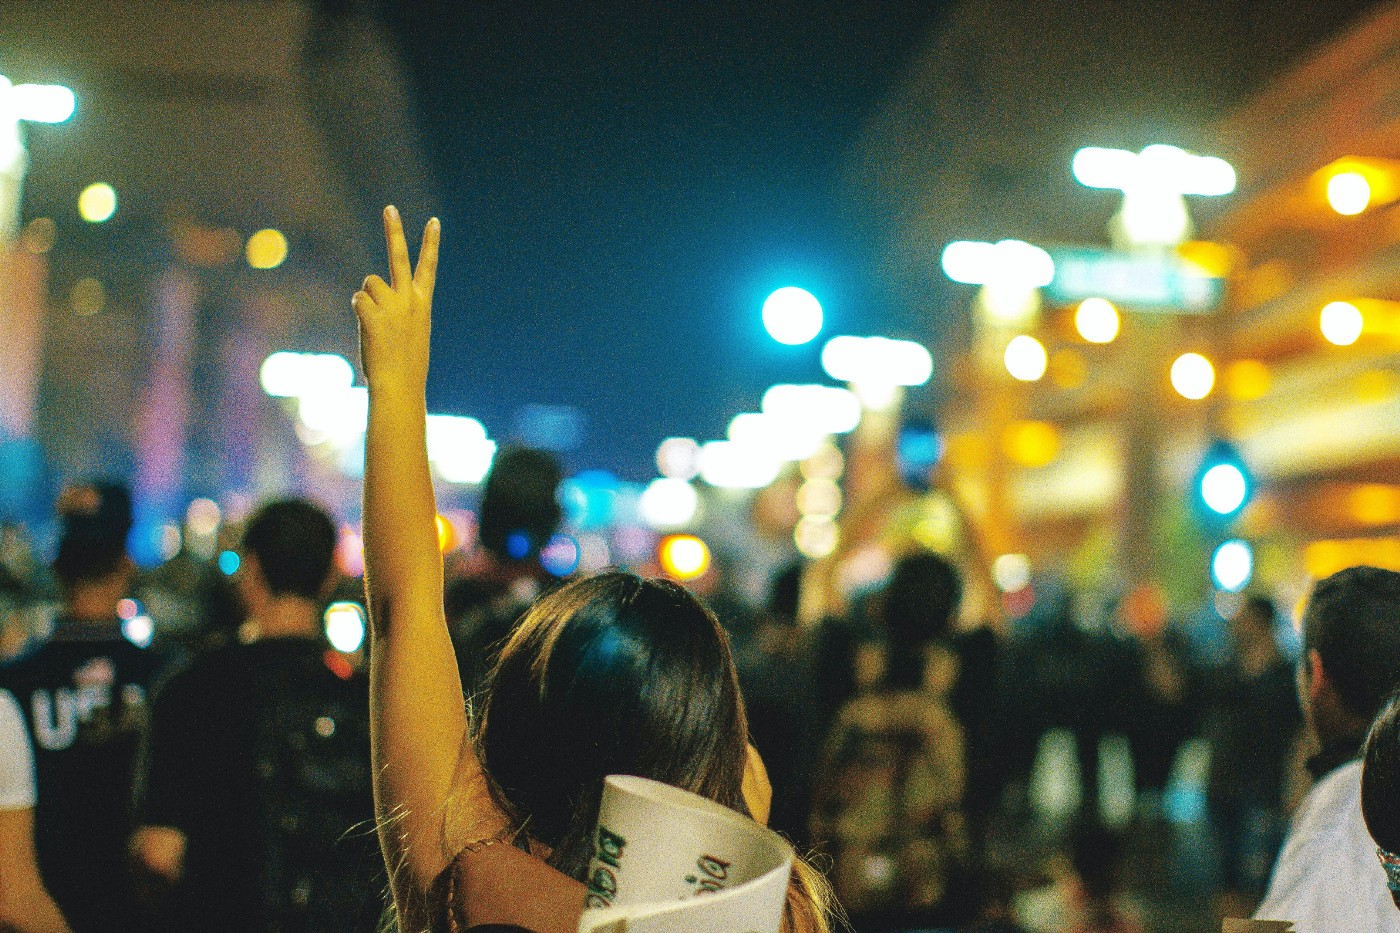 A young woman at the back of a crowd of people showing the peace sign.